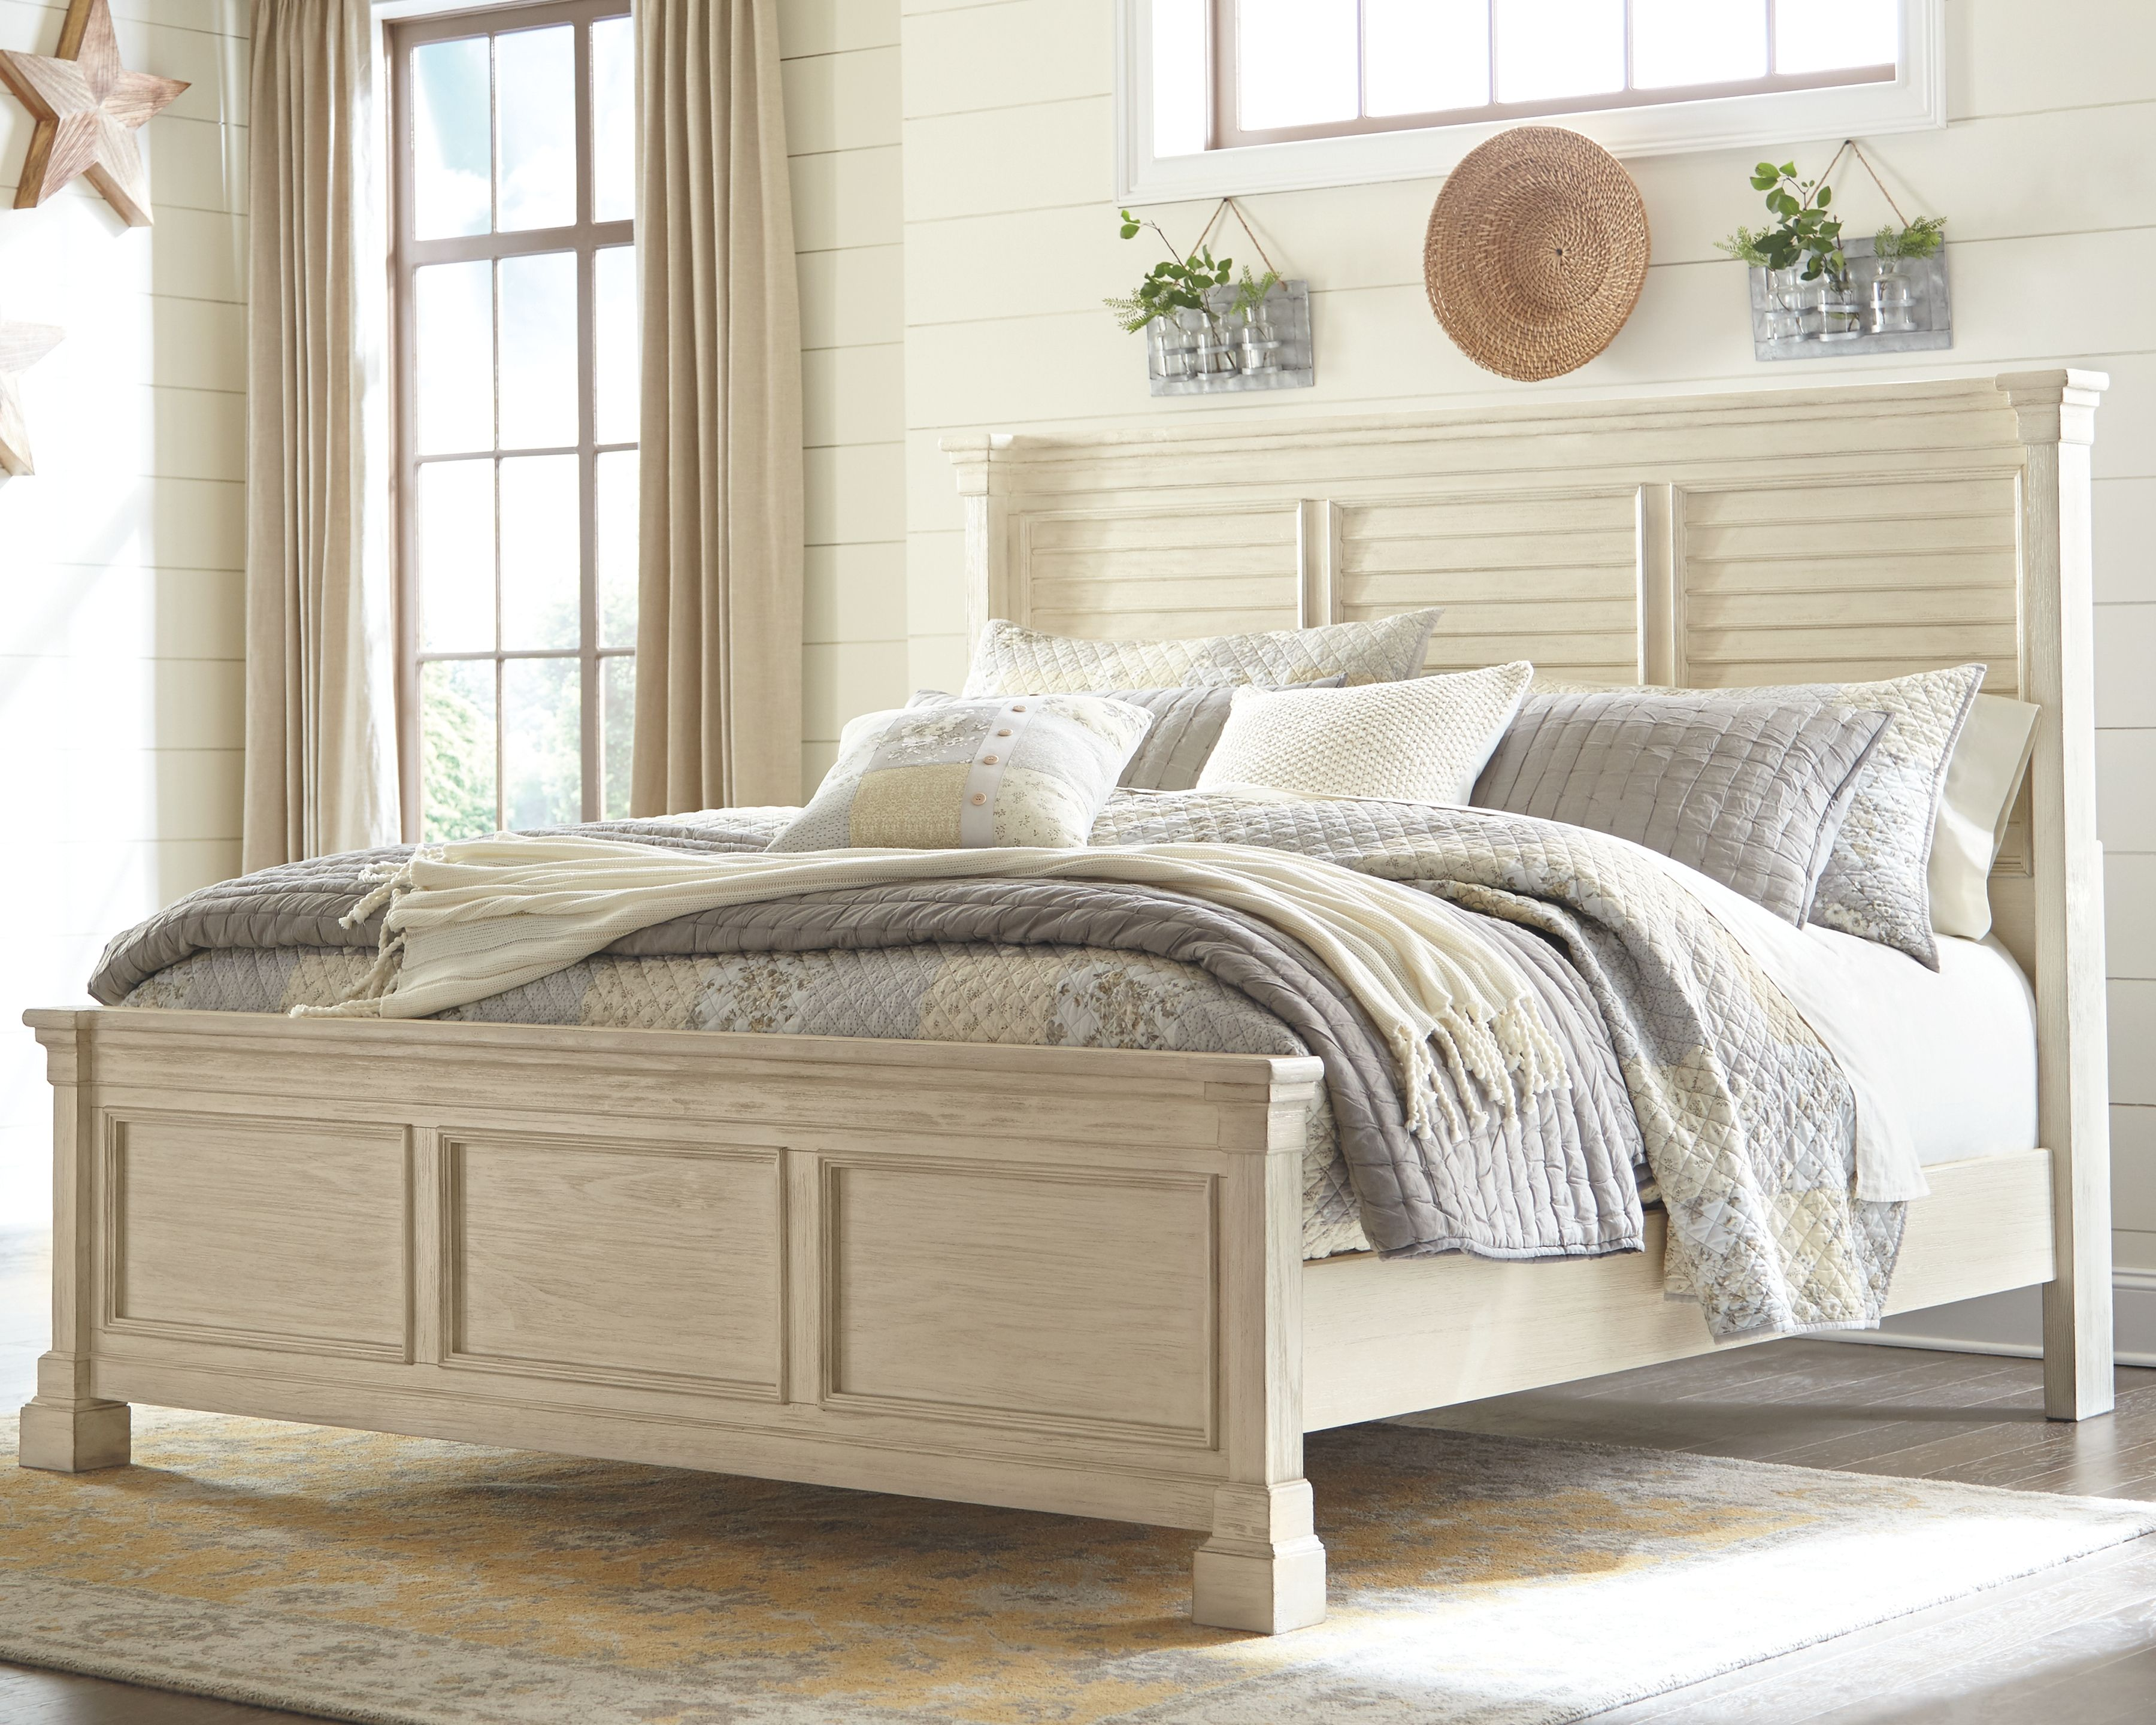 Bolanburg King Louvered Bed, Antique White | Products in 2019 ...